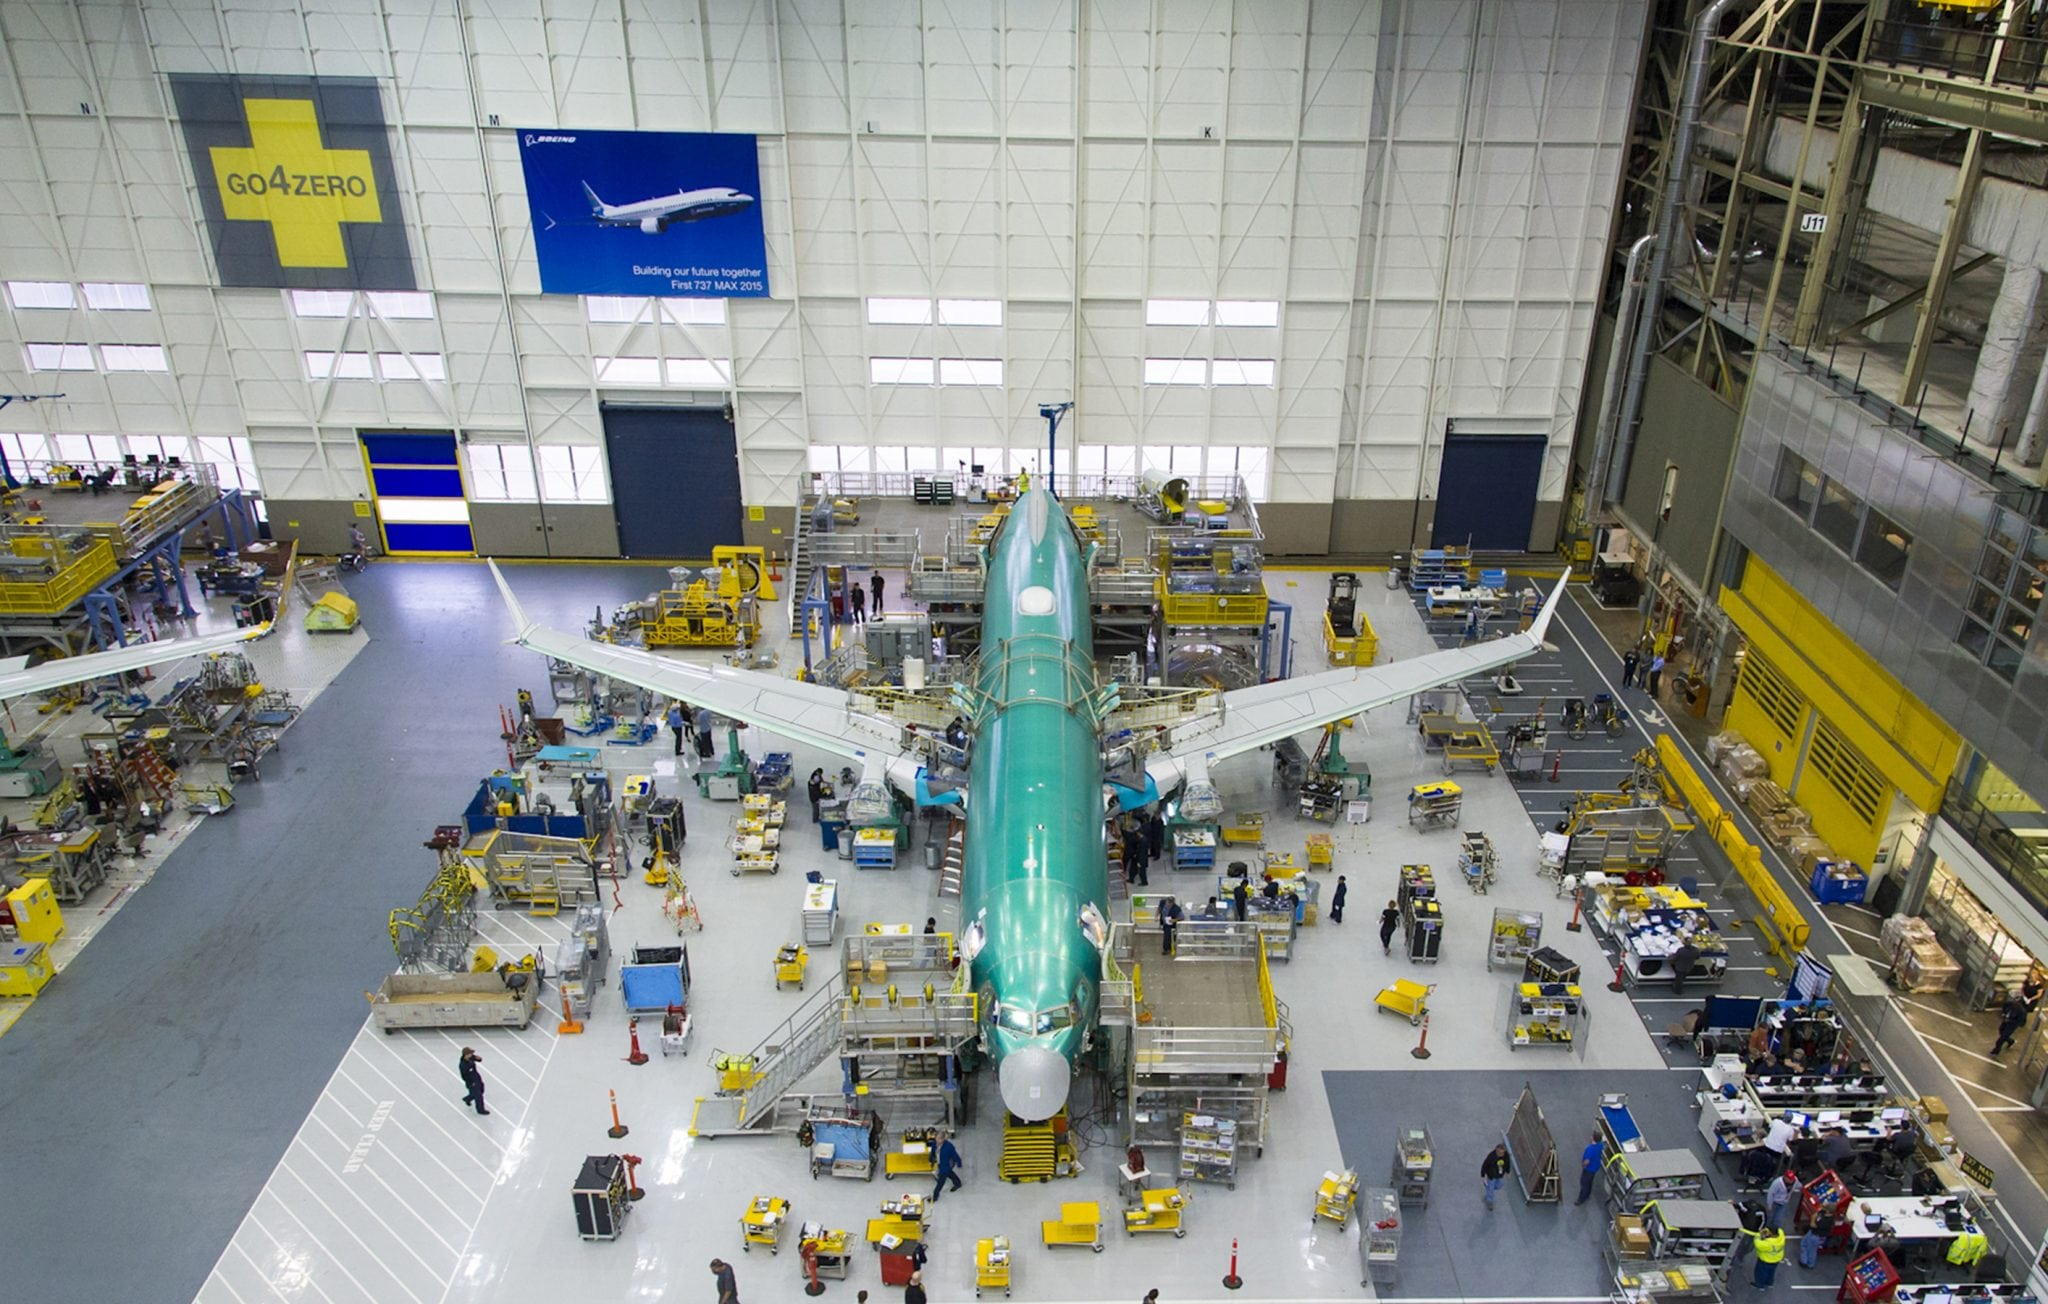 Boeing manufacturing a 737 airliner